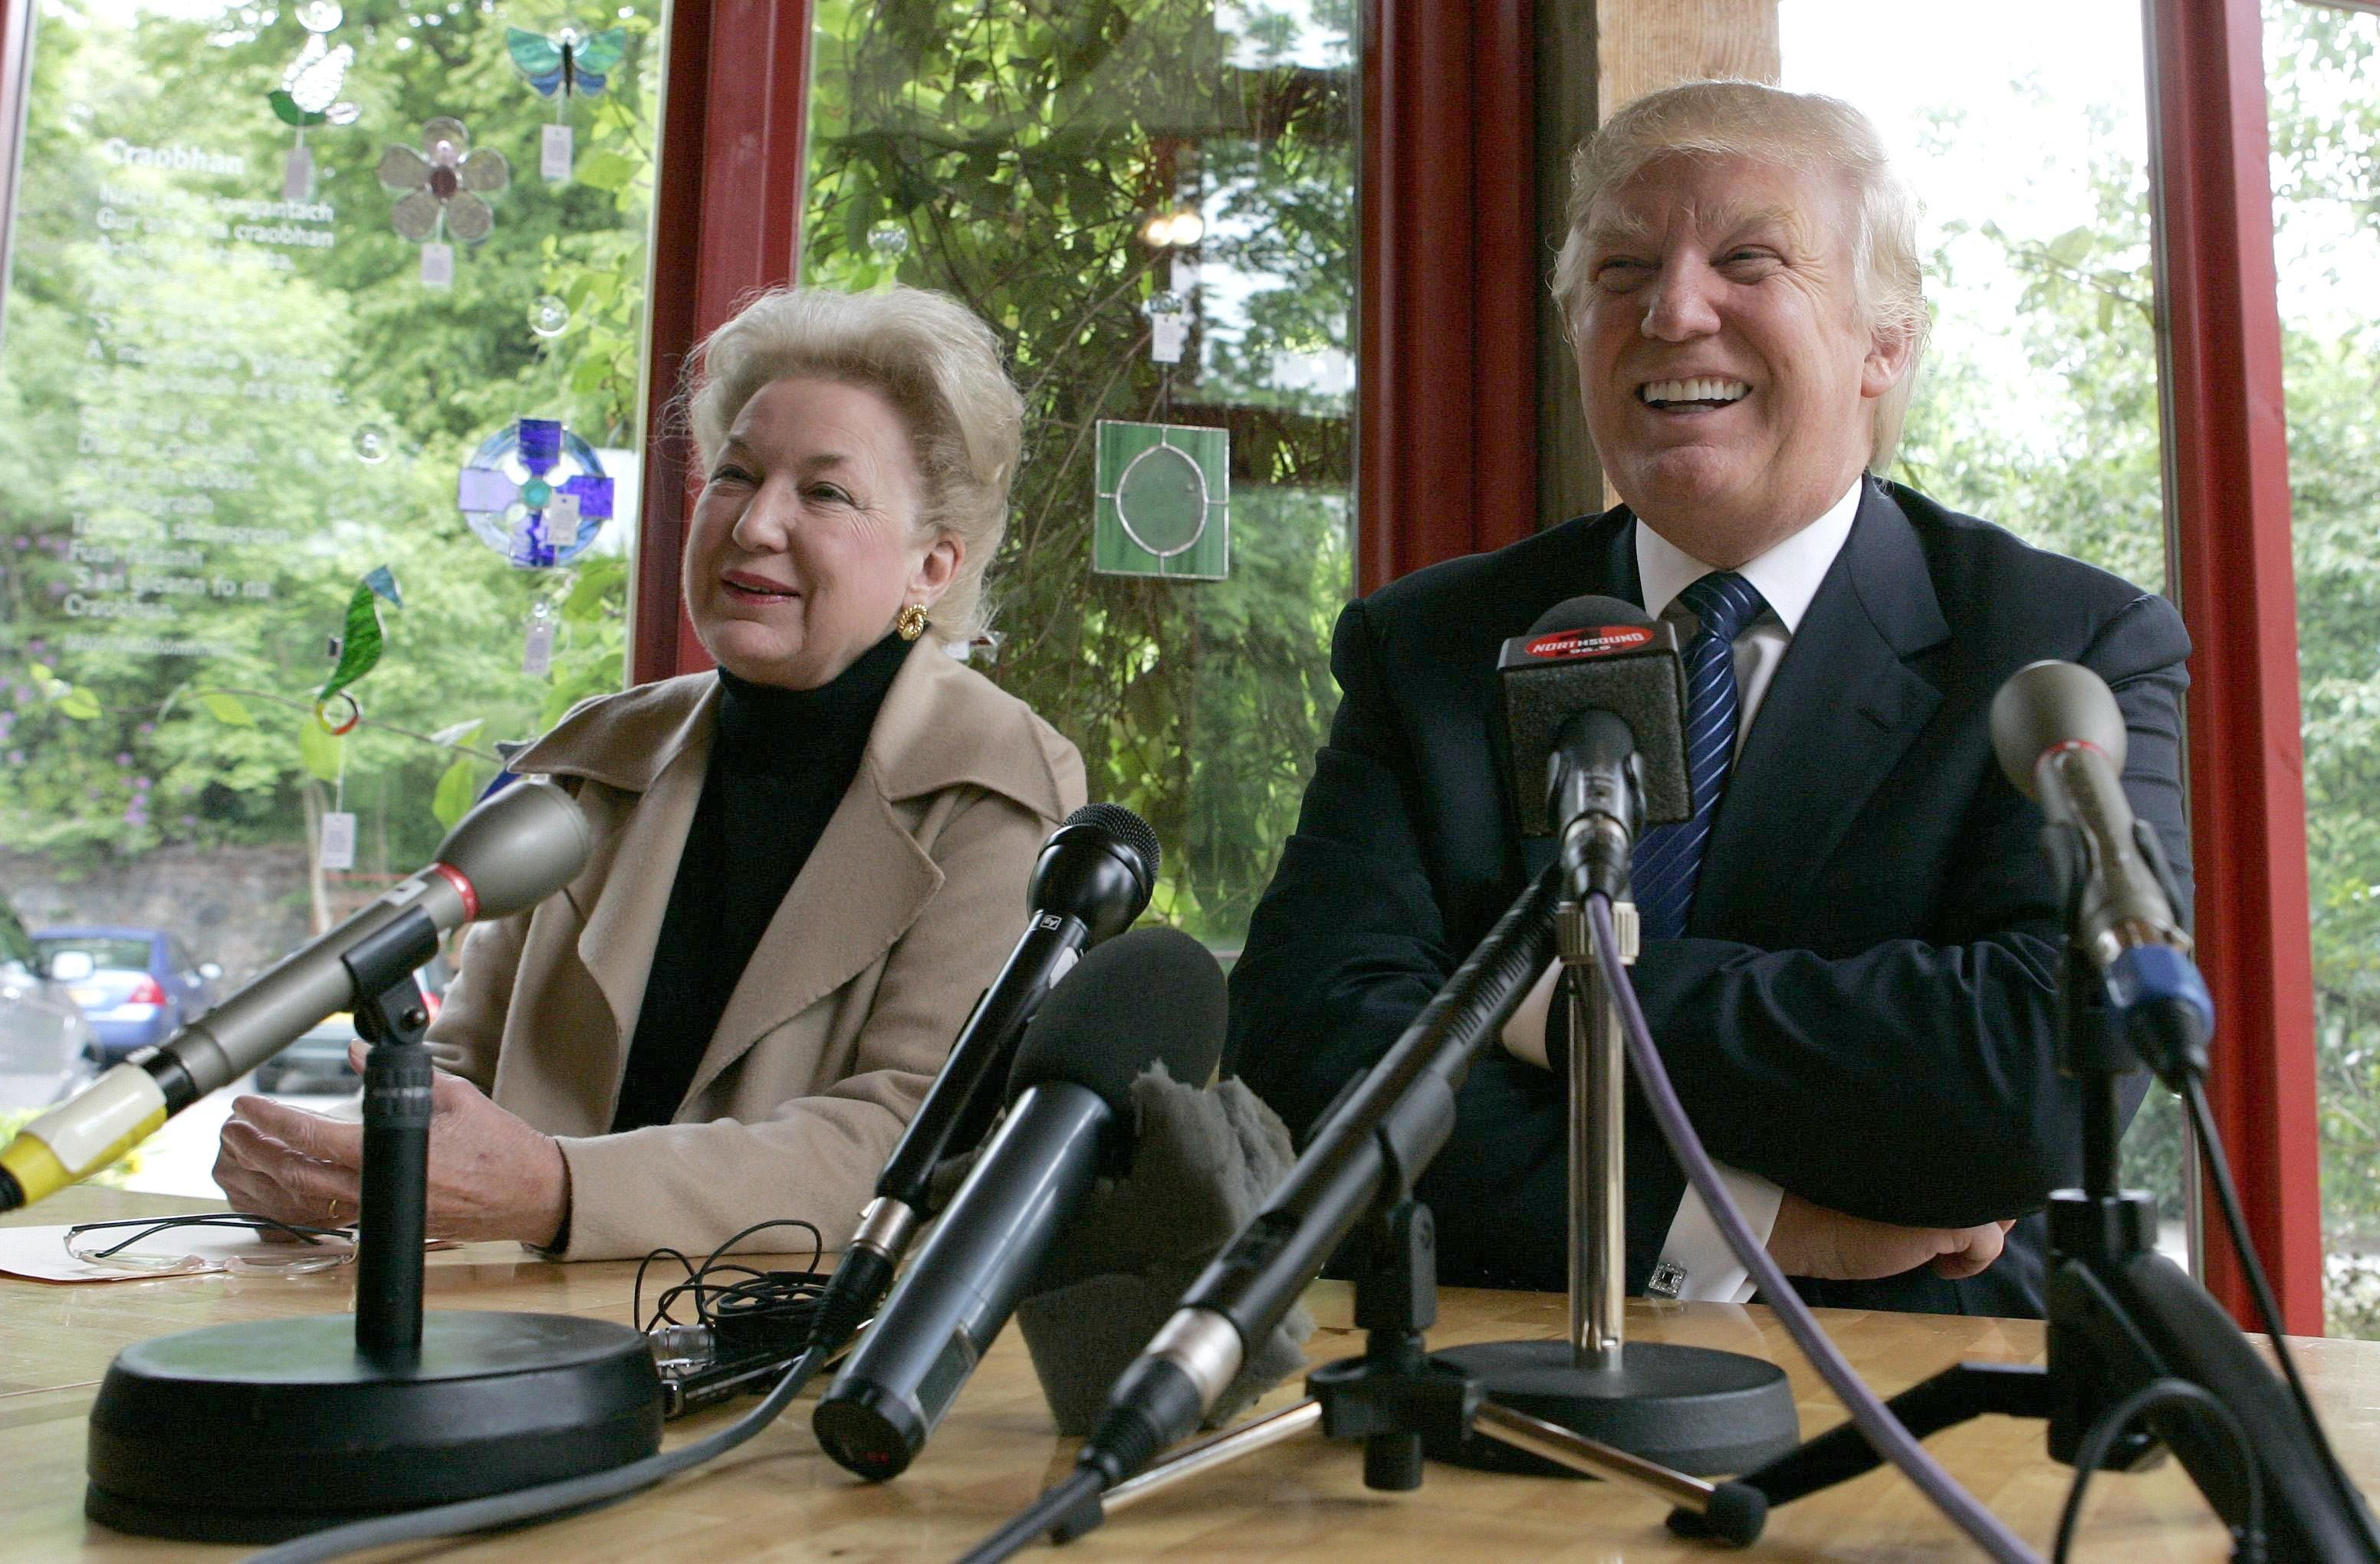 Donald Trump and Maryanne Trump Barry at a press conference in 2008.